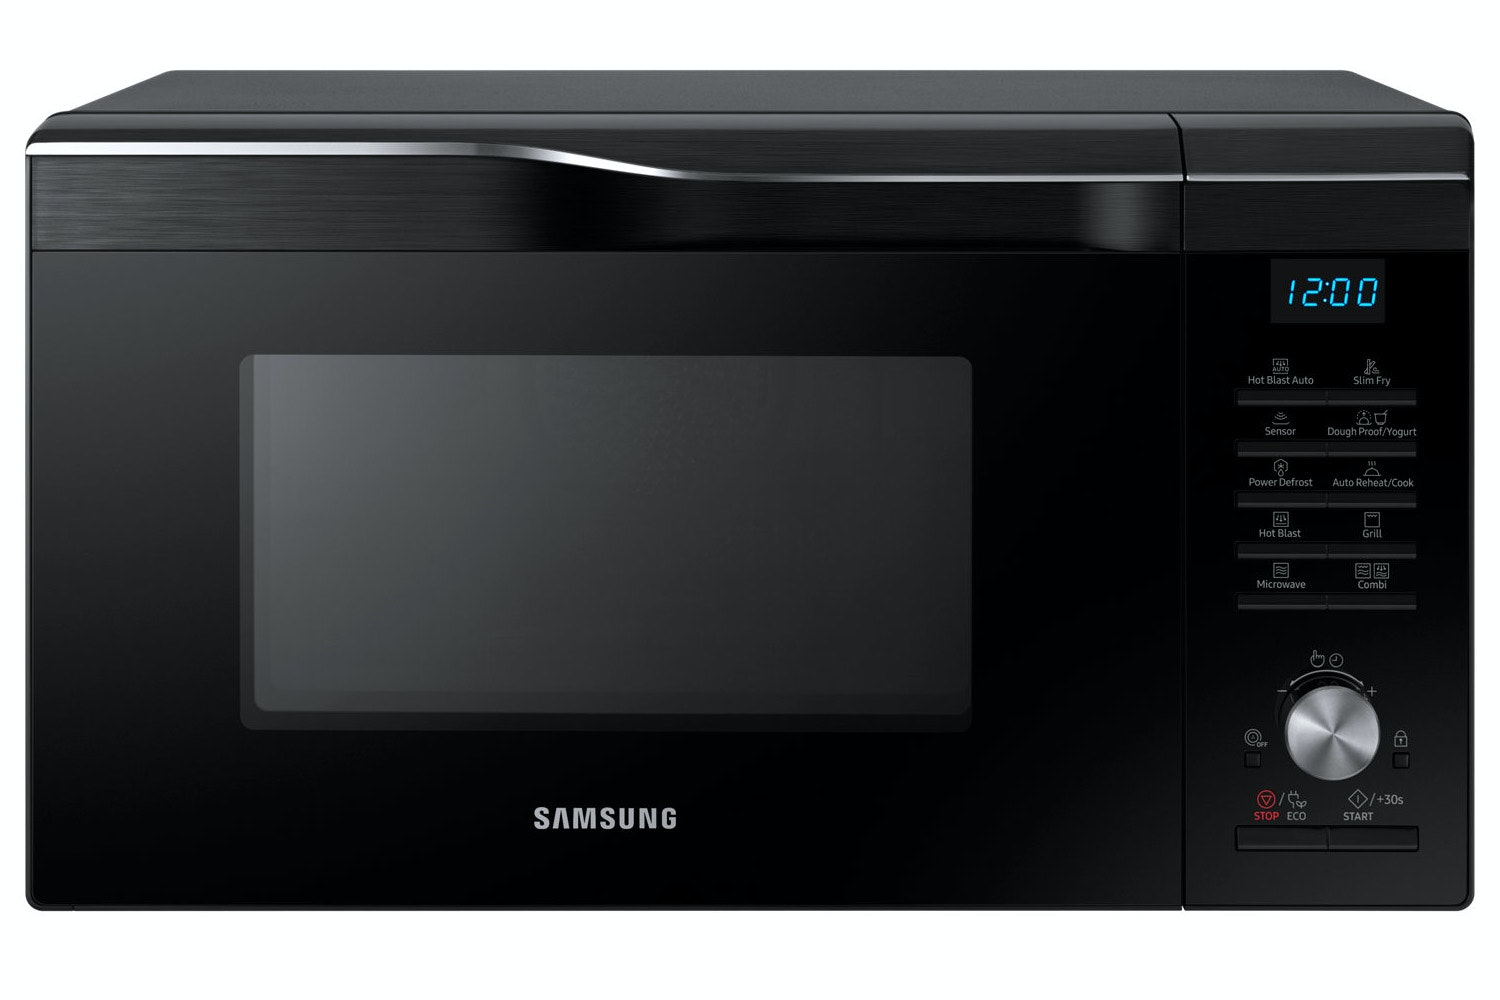 Samsung 28L 1400W Combination Microwave | MC28M6075CK/EU | Black